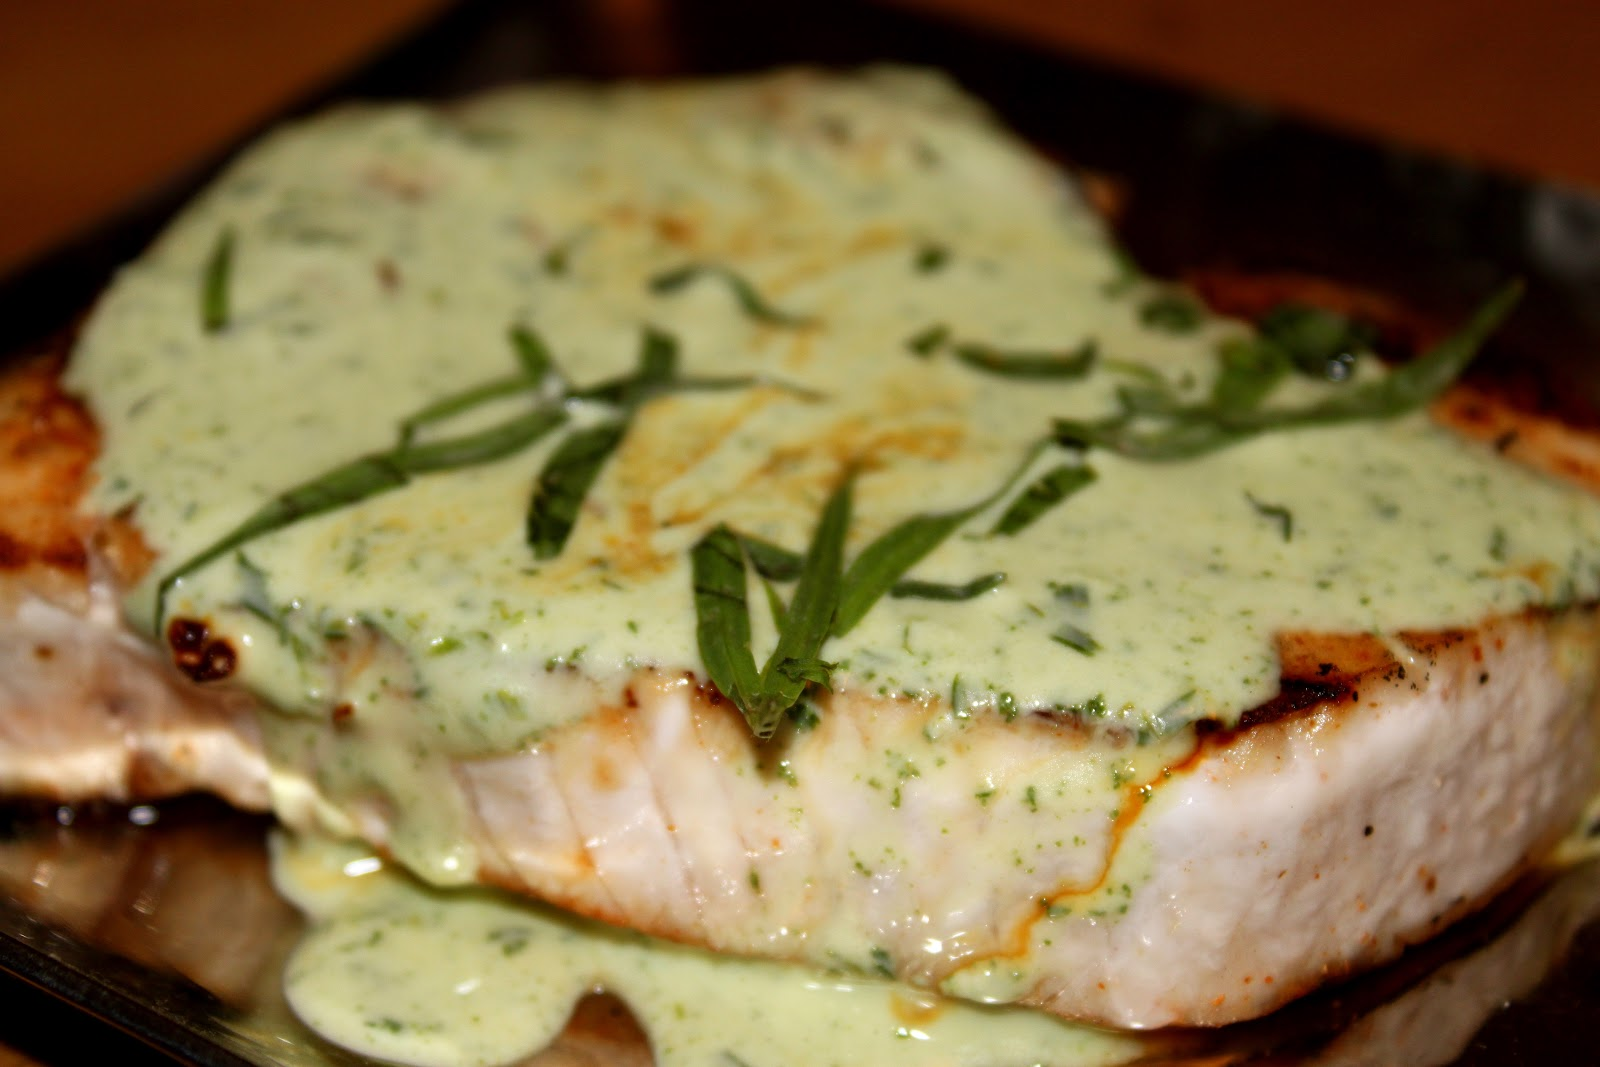 Blackened Swordfish with Tarragon Yogurt Sauce